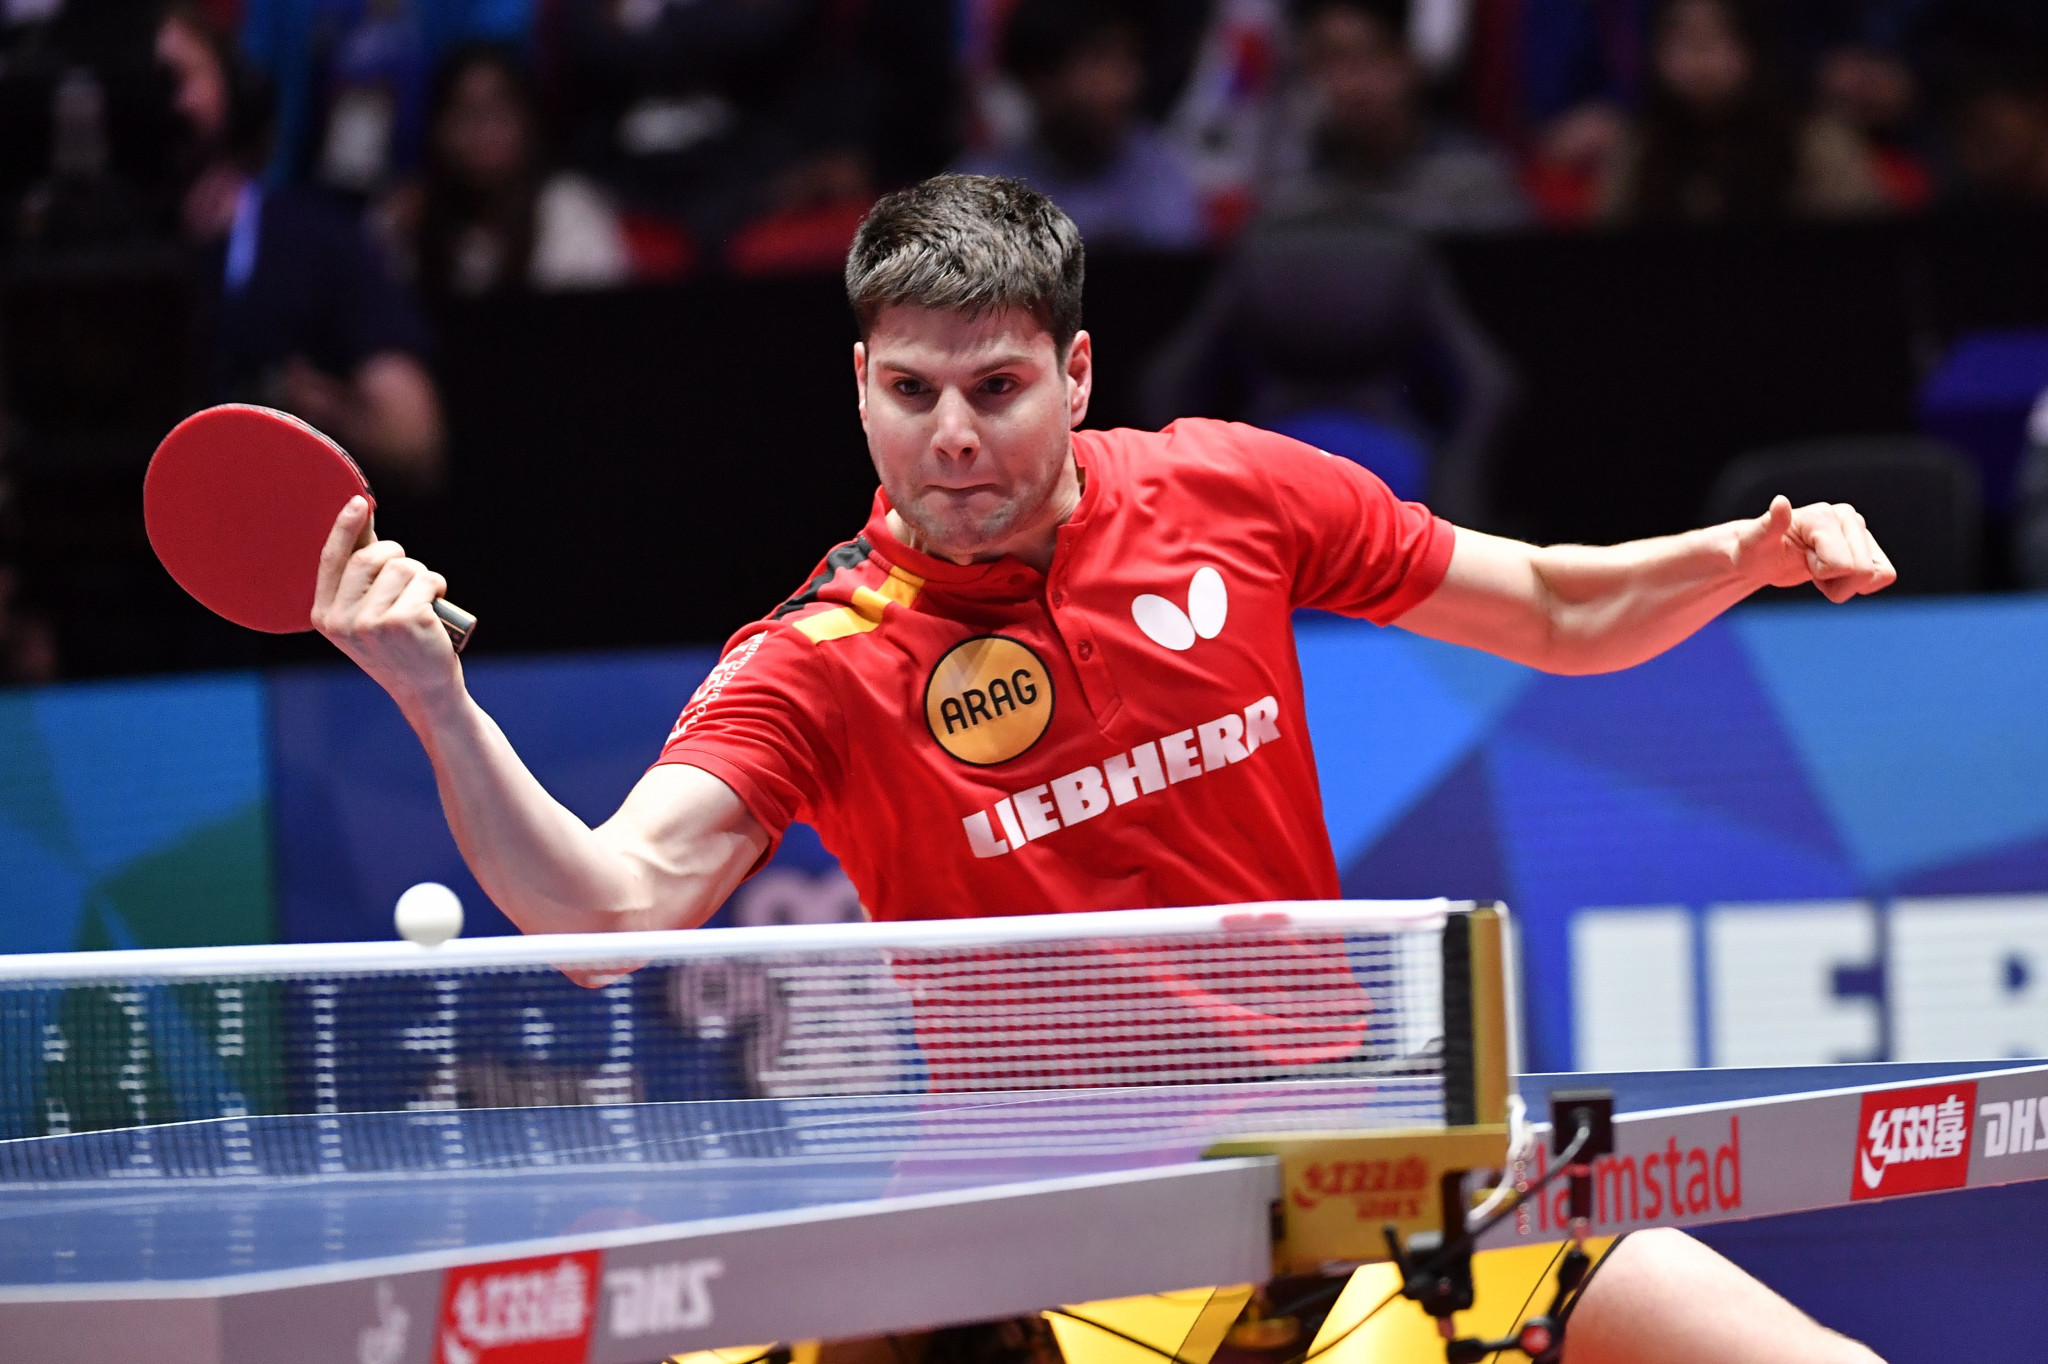 Ovtcharov stunned by world number 111 at ITTF Bulgaria Open